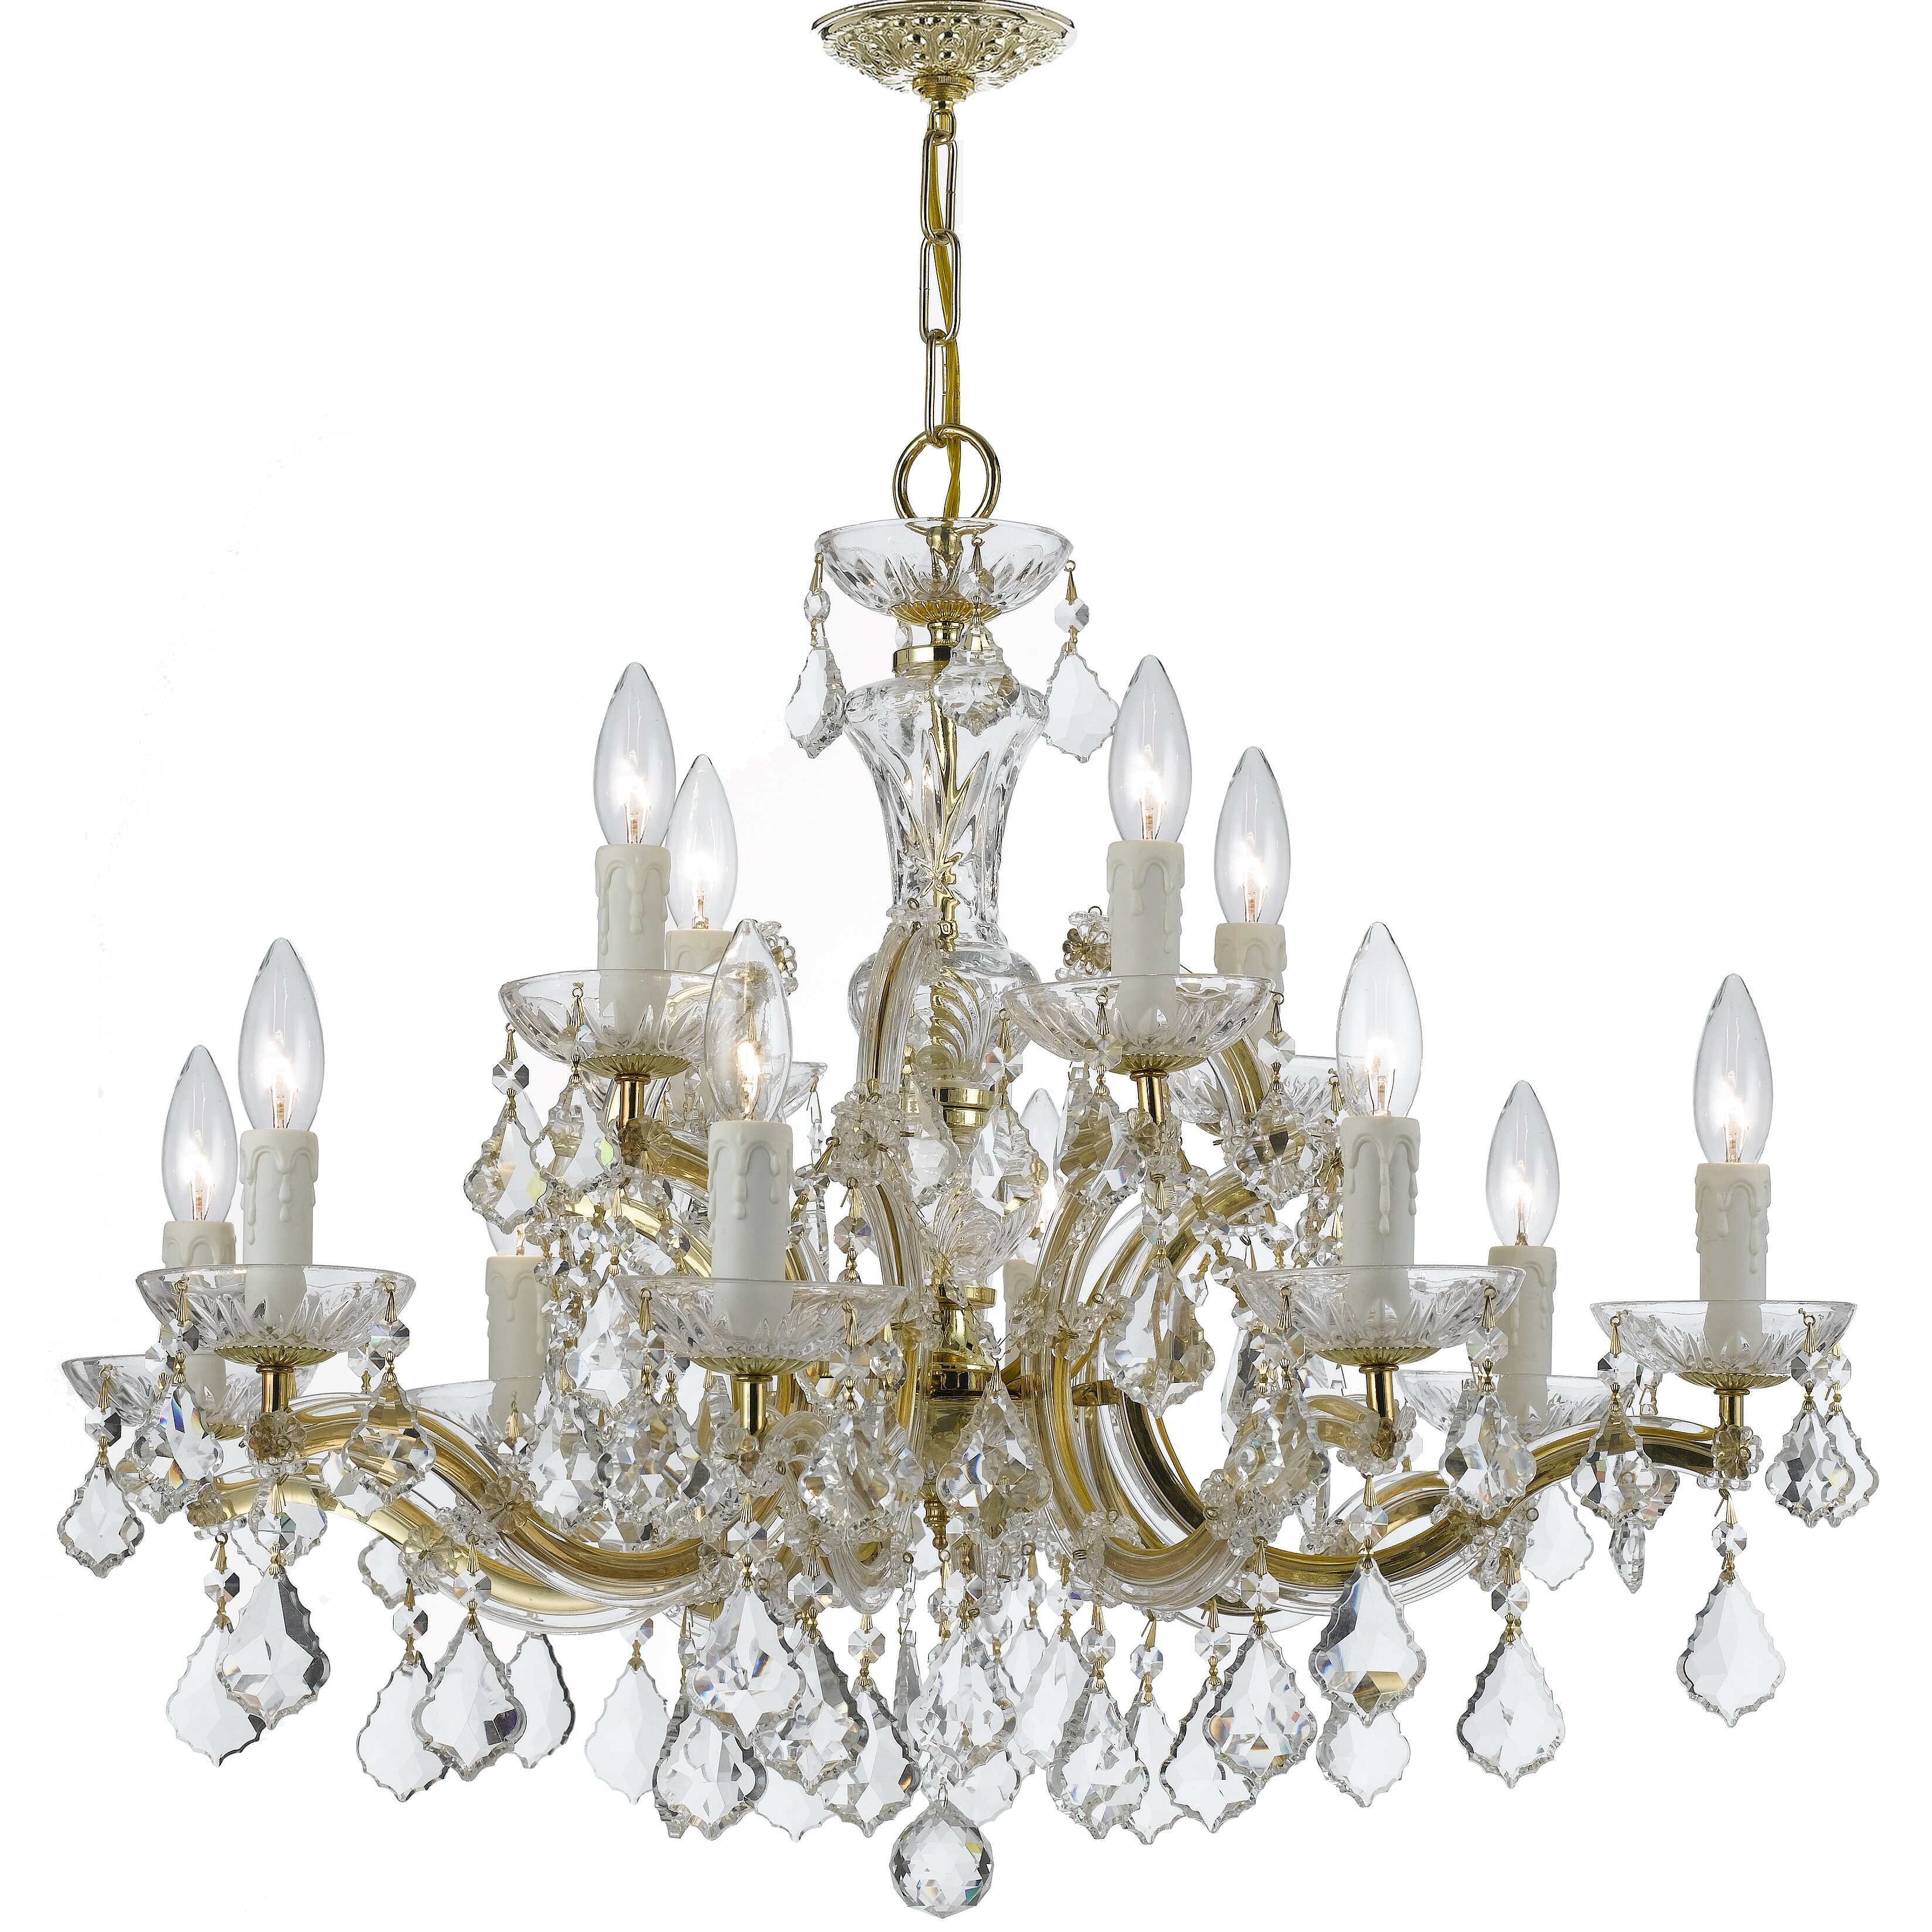 Maura 12Light Crystal Chandelier Reviews – Candle Crystal Chandelier